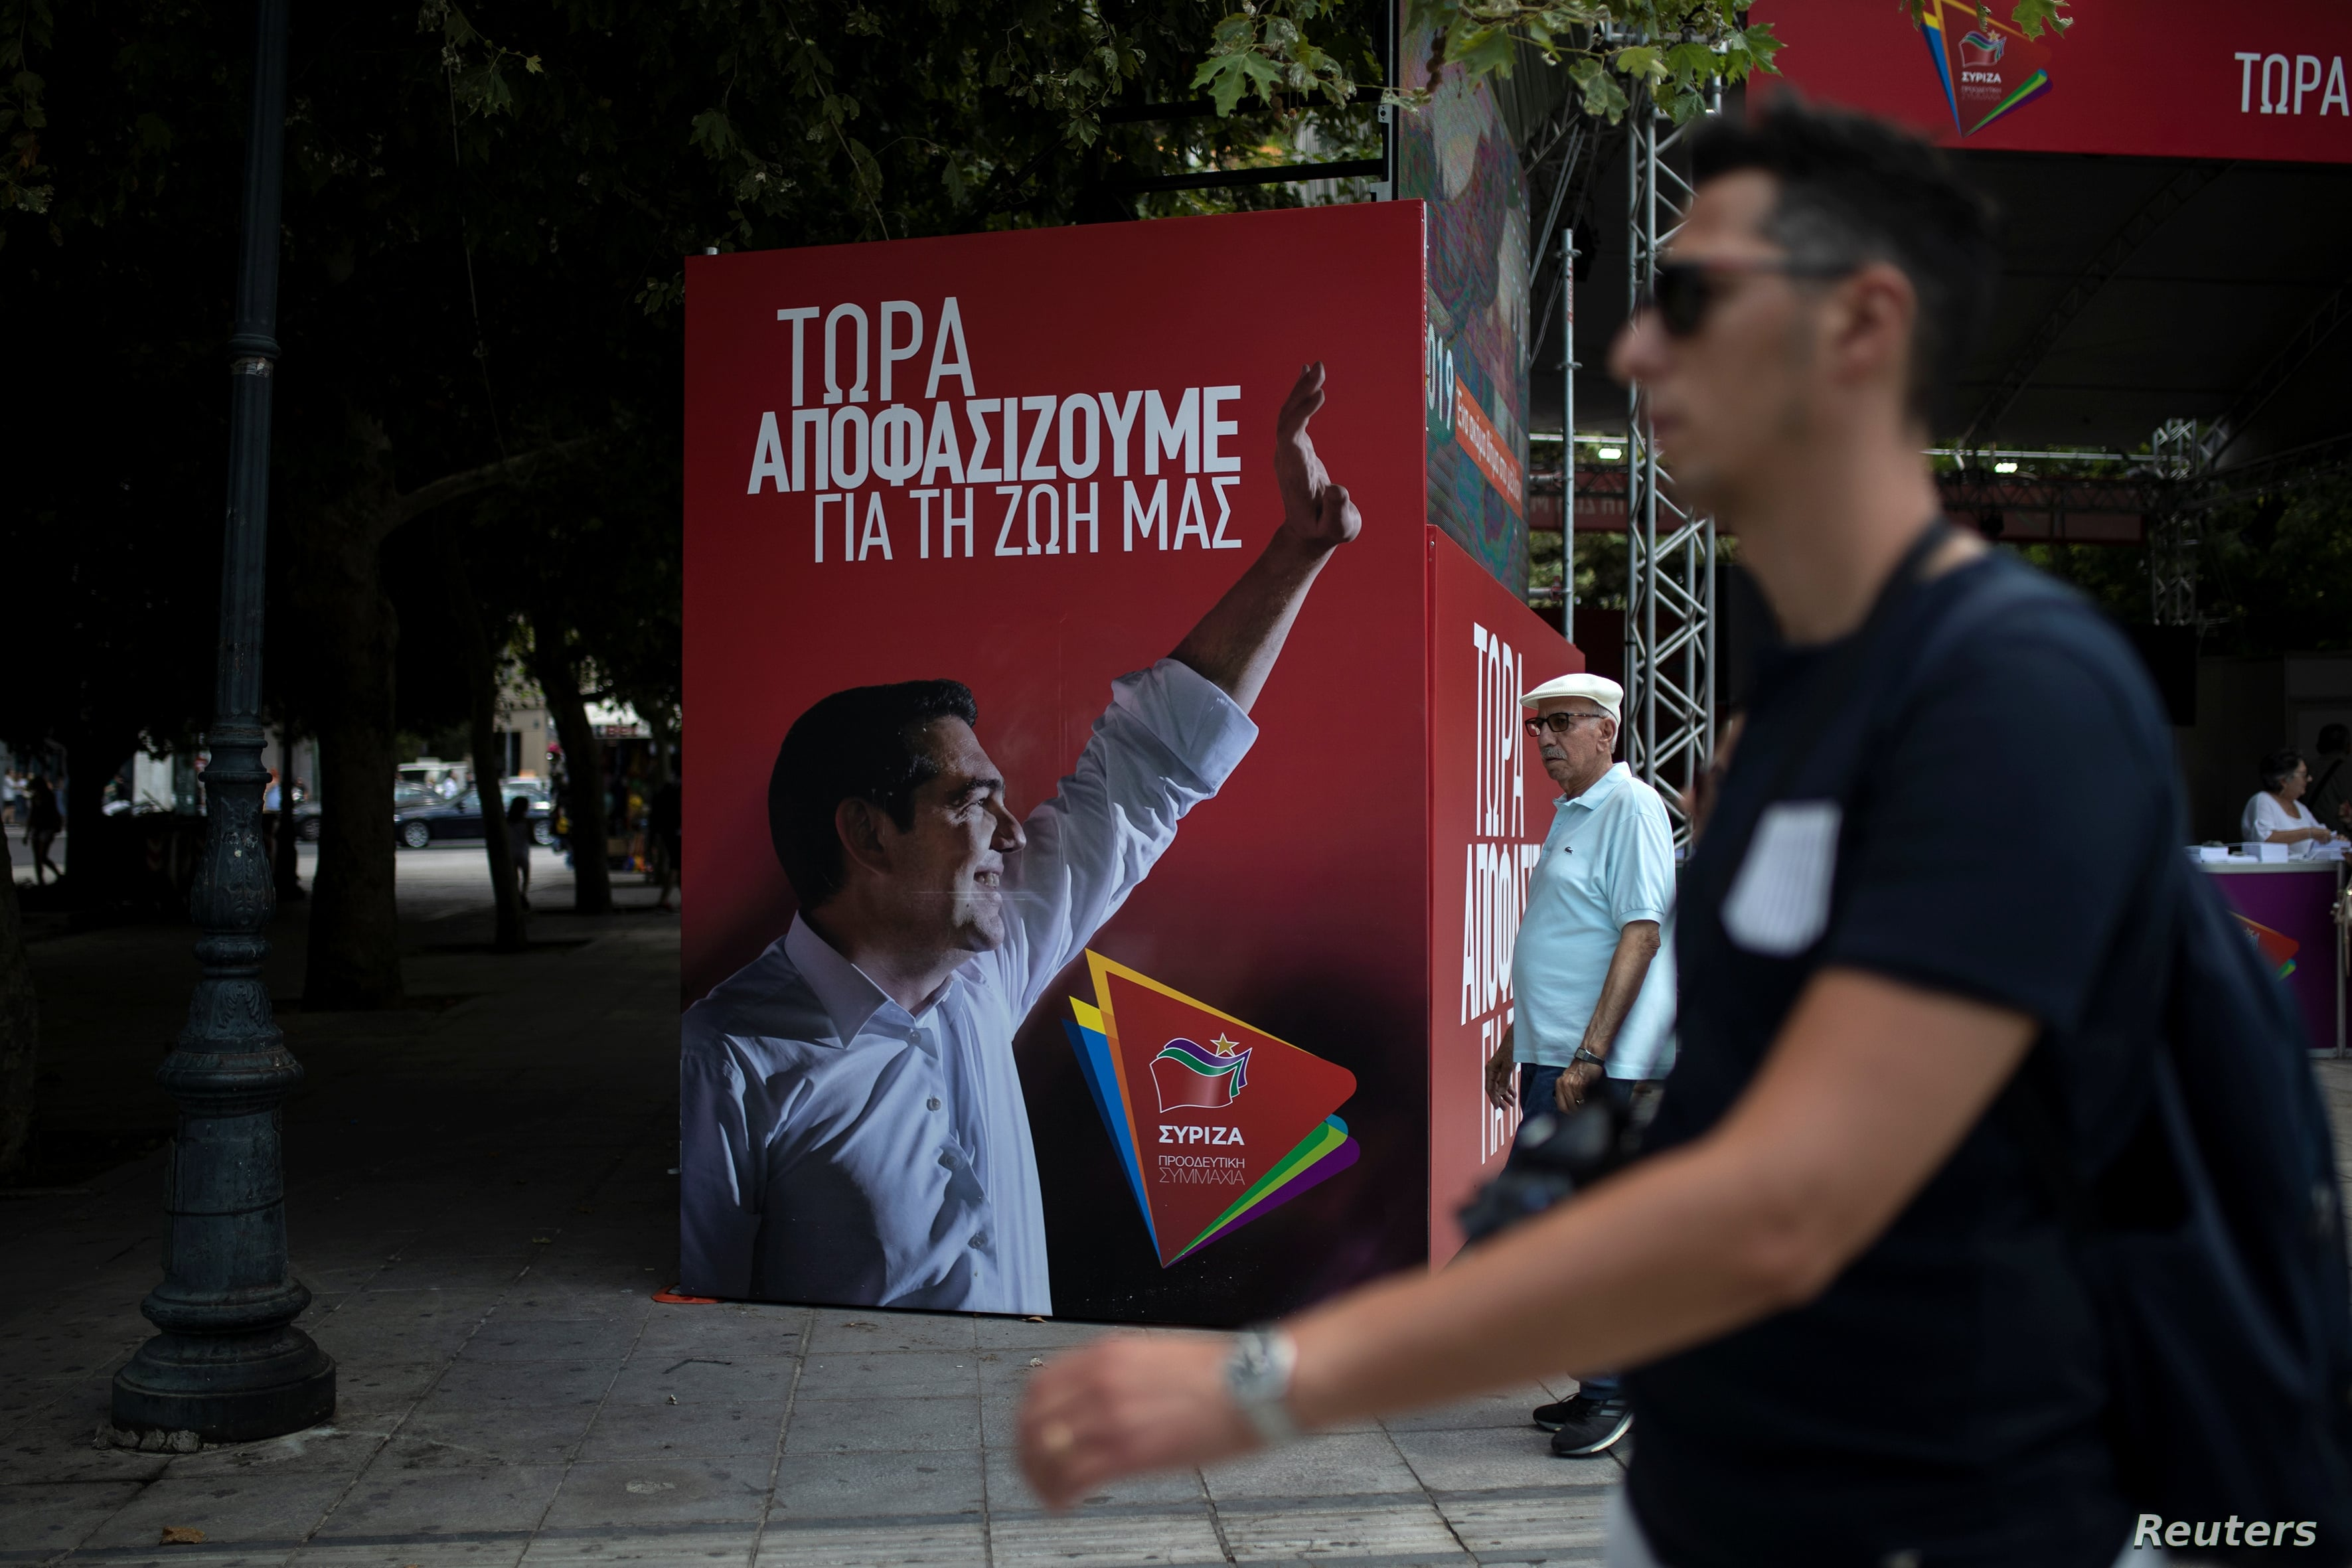 Leftist Tsipras' days in power appear numbered as Greeks vote 1